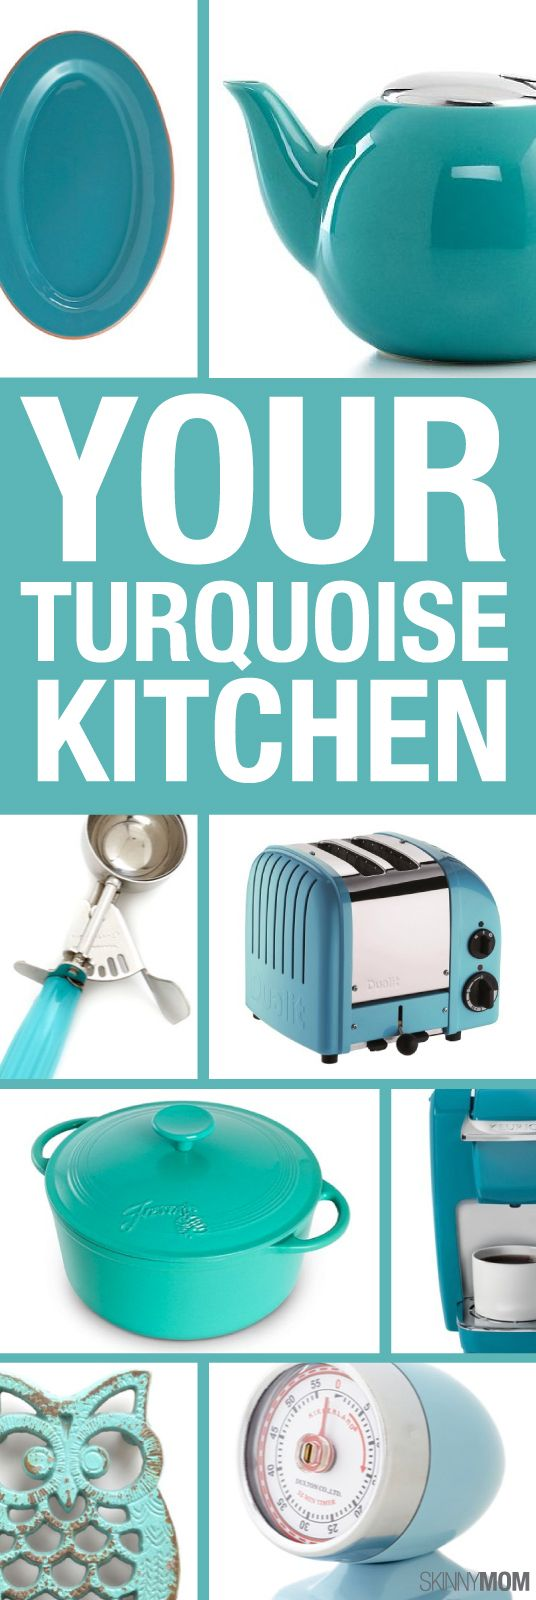 Feeling blue? Change the look of your kitchen with these turquoise finds!